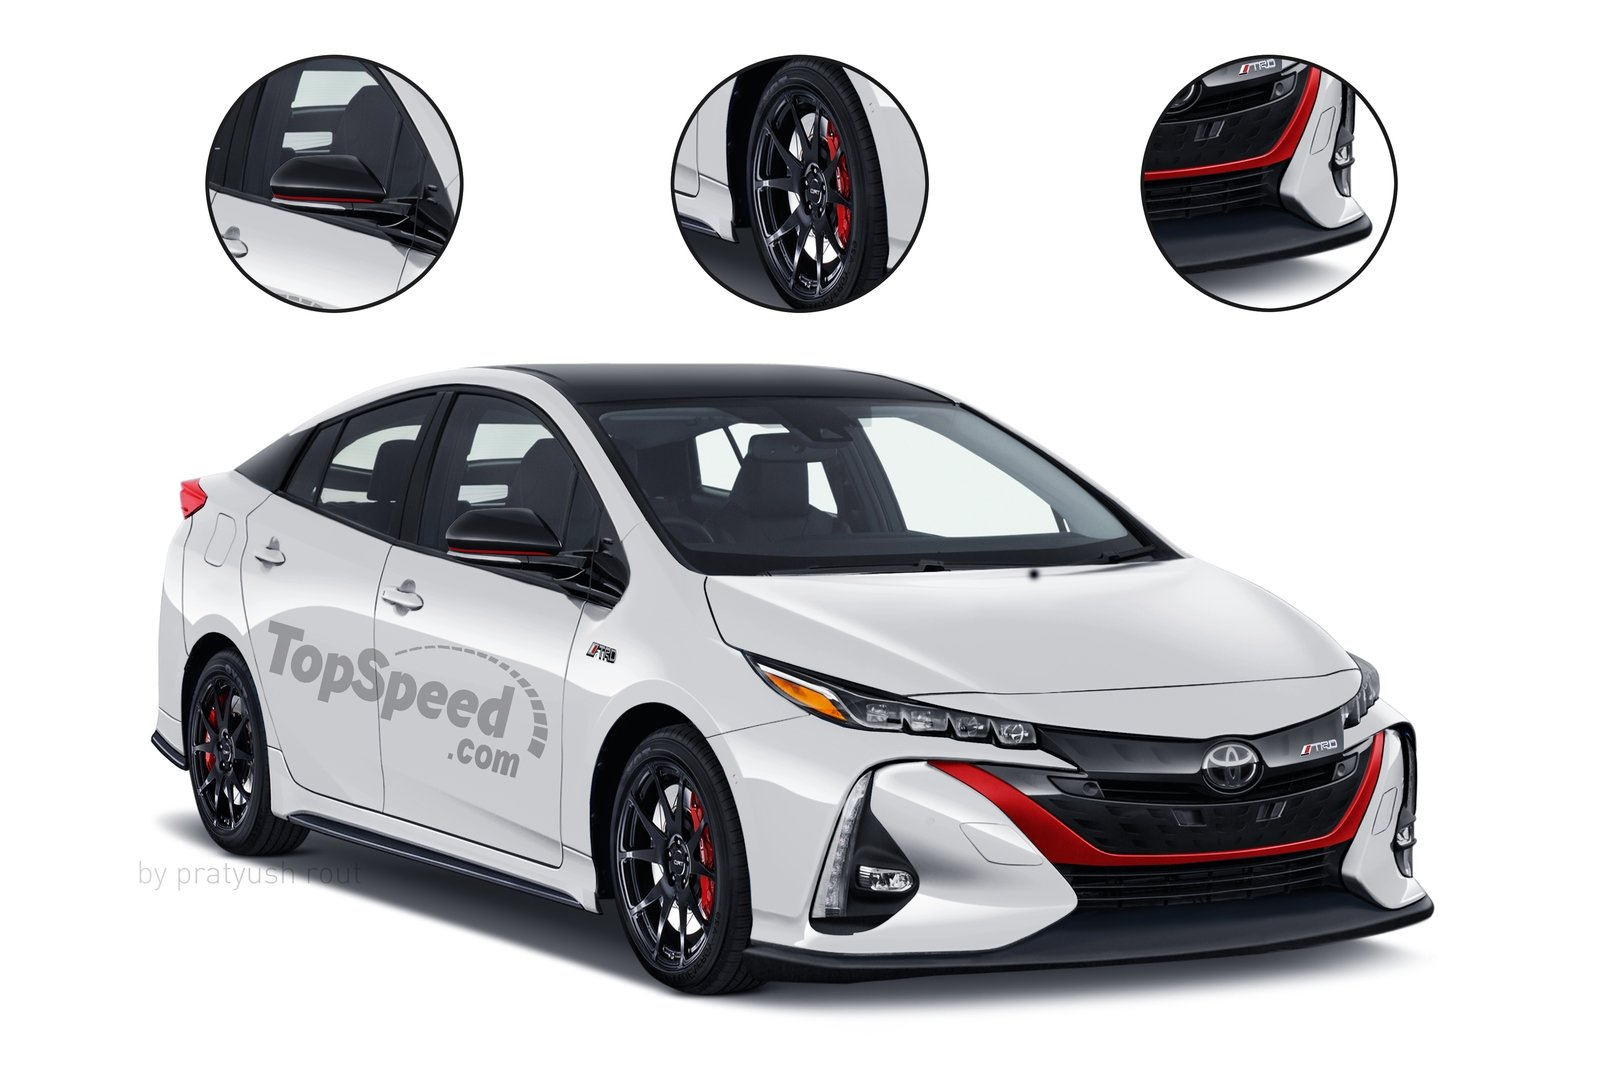 2018 toyota prius trd review top speed. Black Bedroom Furniture Sets. Home Design Ideas